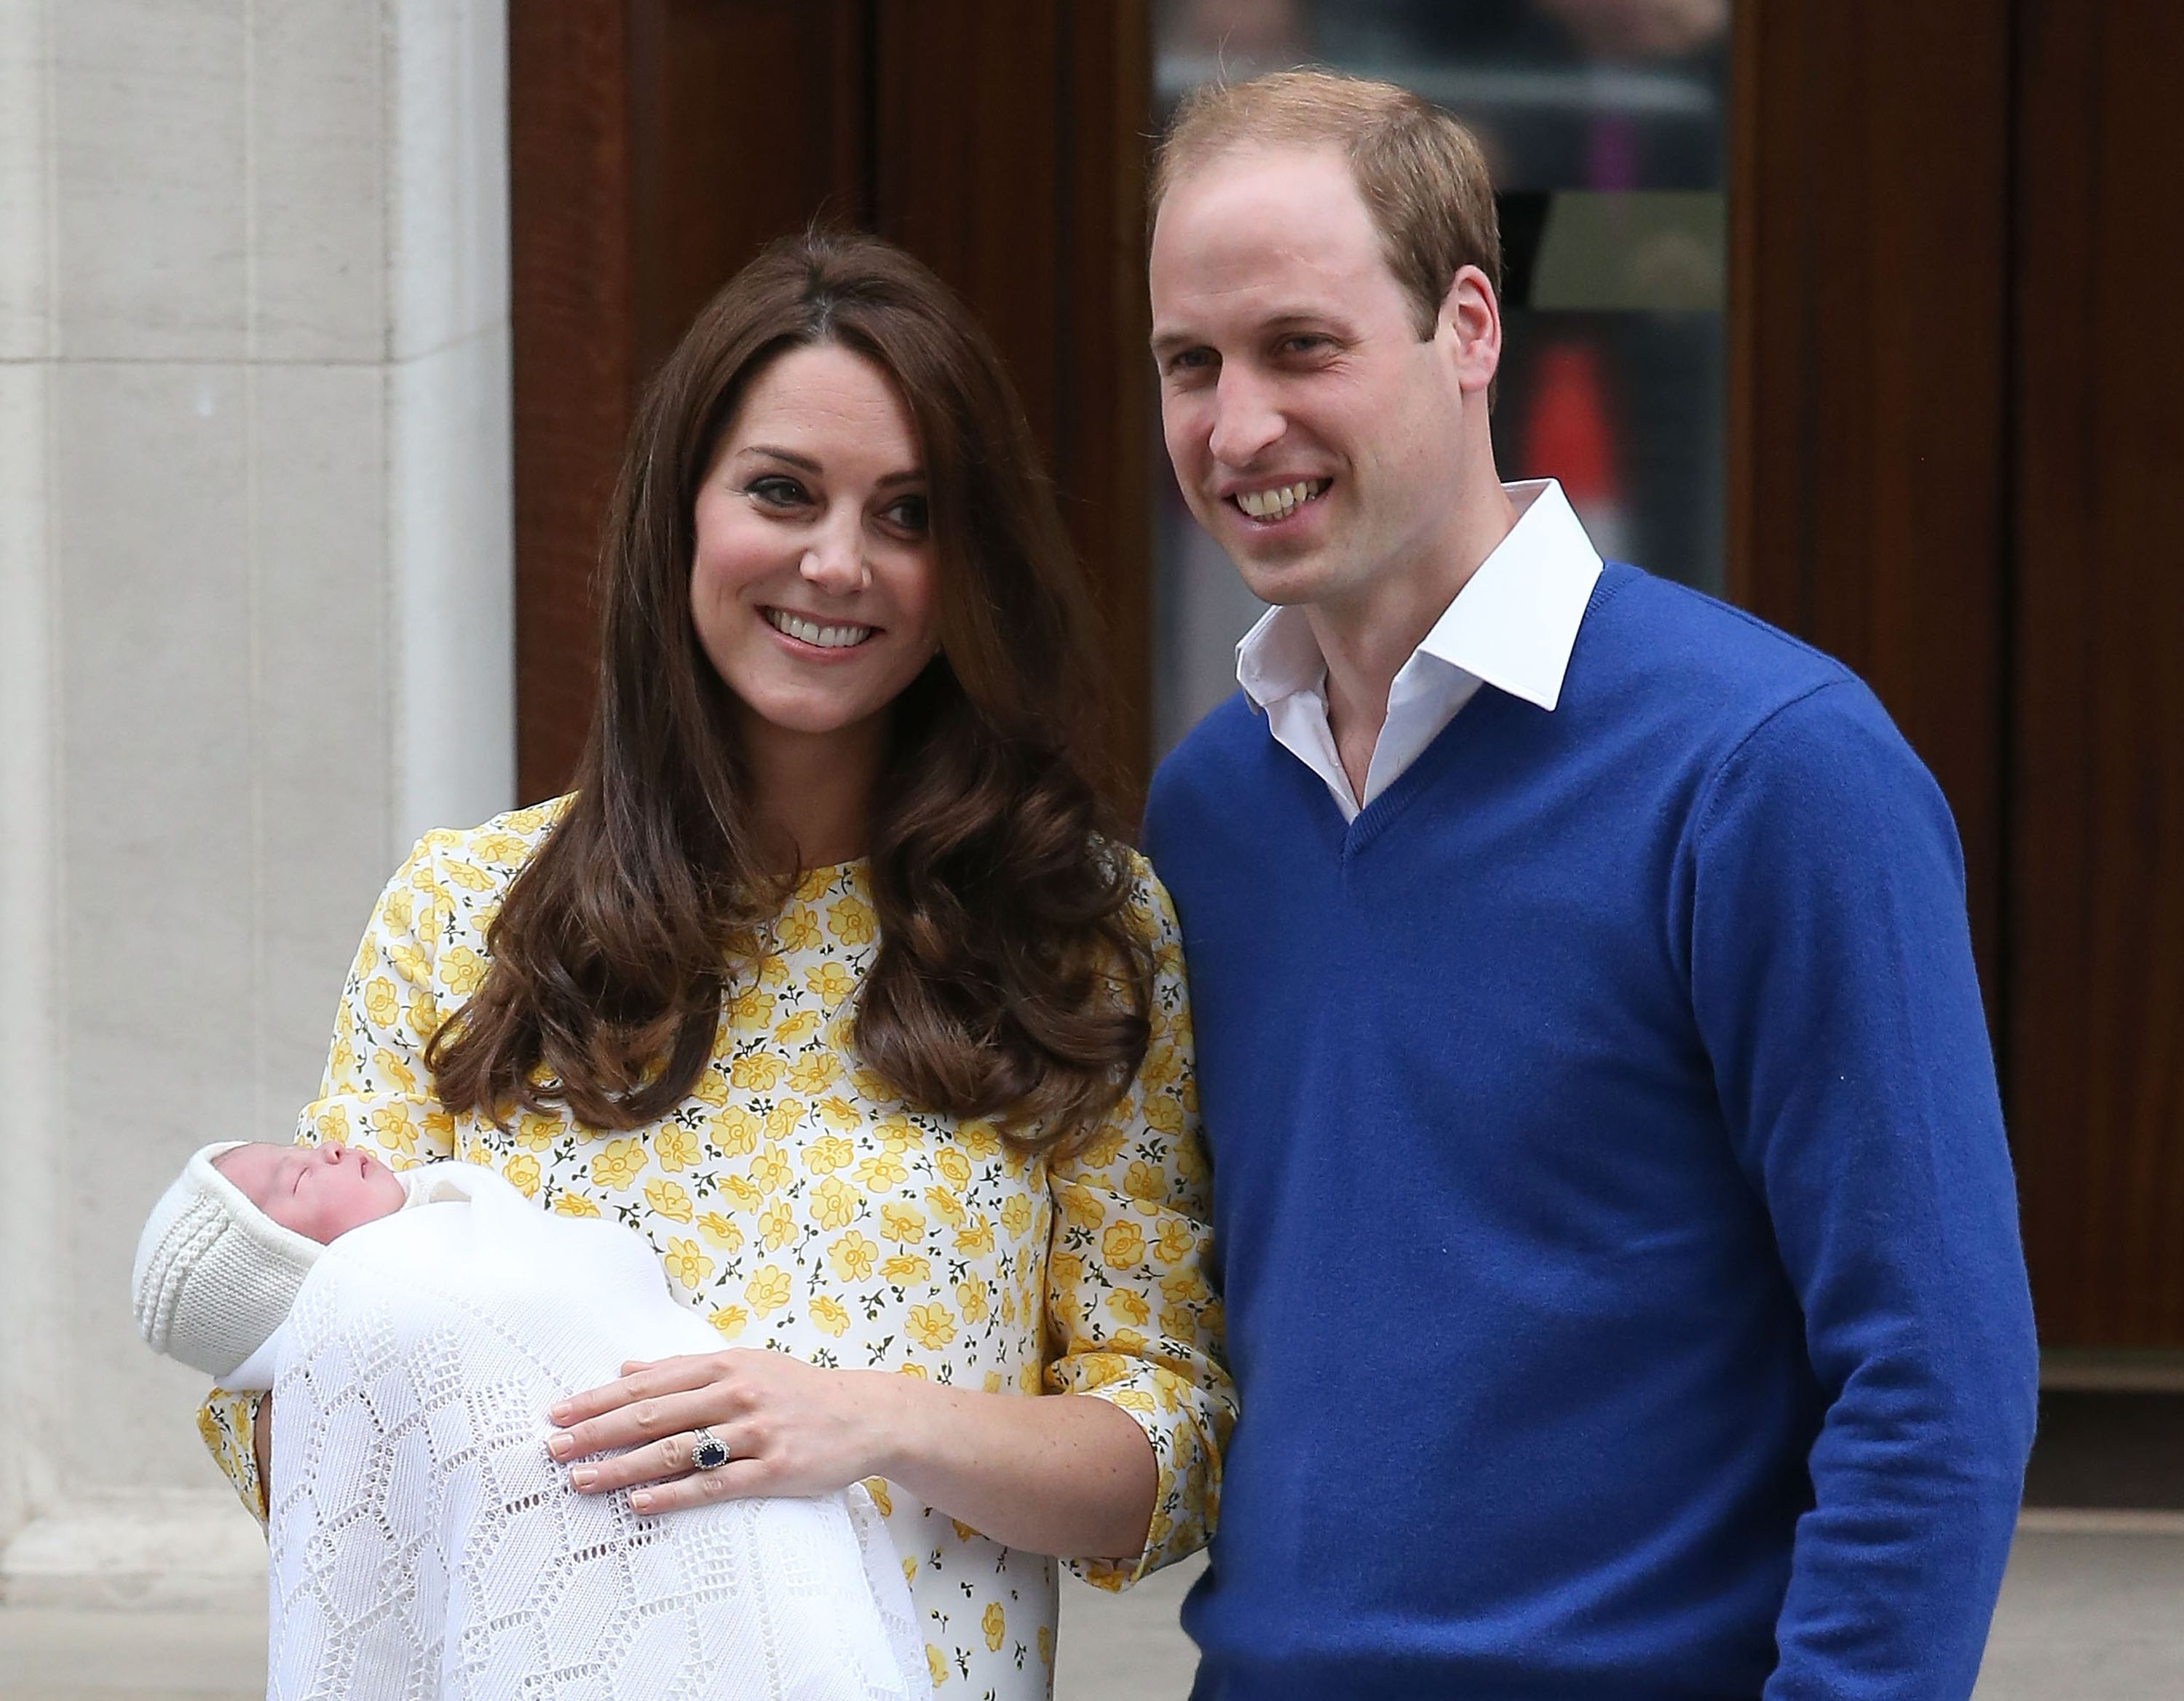 The Duke and Duchess of Cambridge pose for photos outside the Lindo Wing with Princess Charlotte.